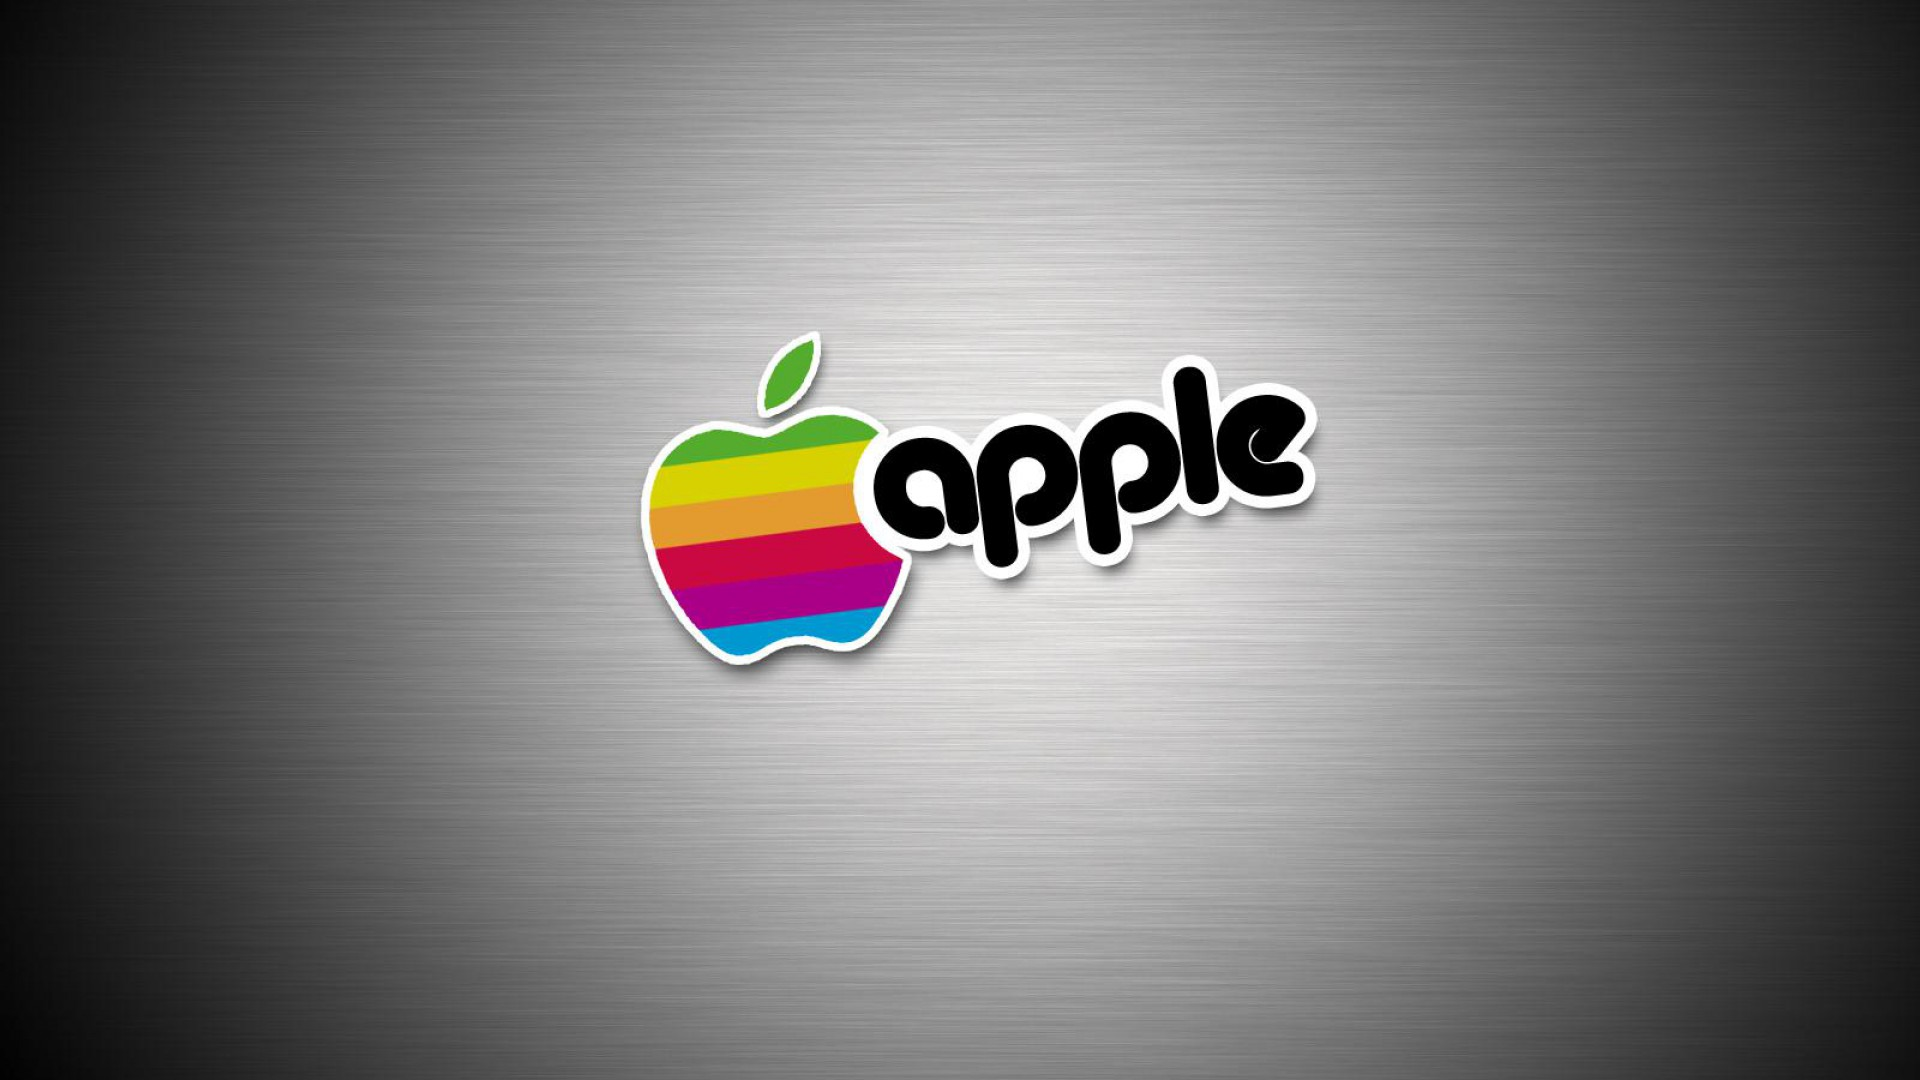 Apple Logo Wallpapers Background HD Wallpaper | Ideas for the